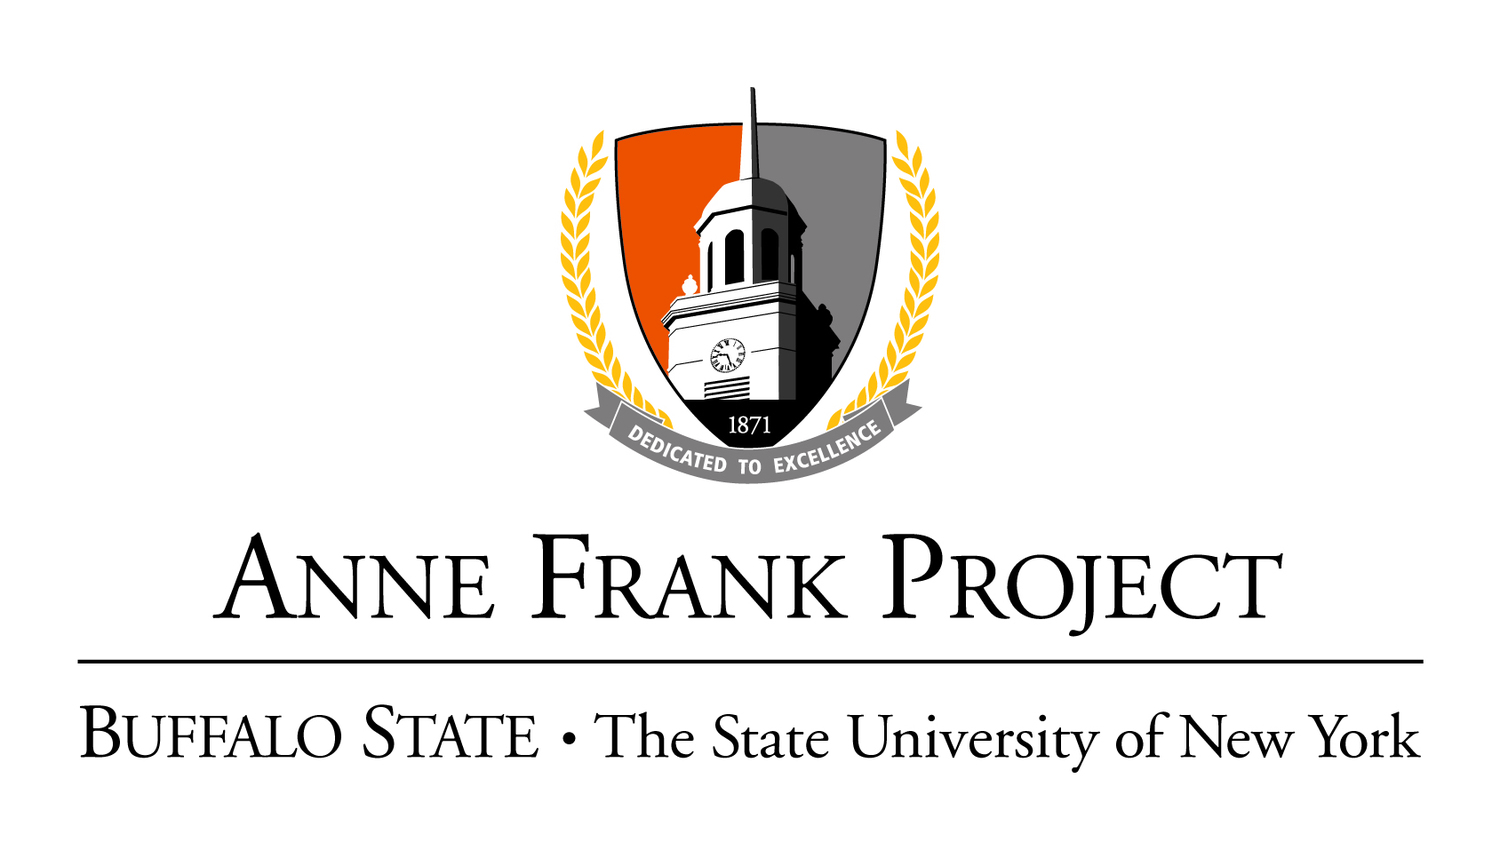 The Anne Frank Project